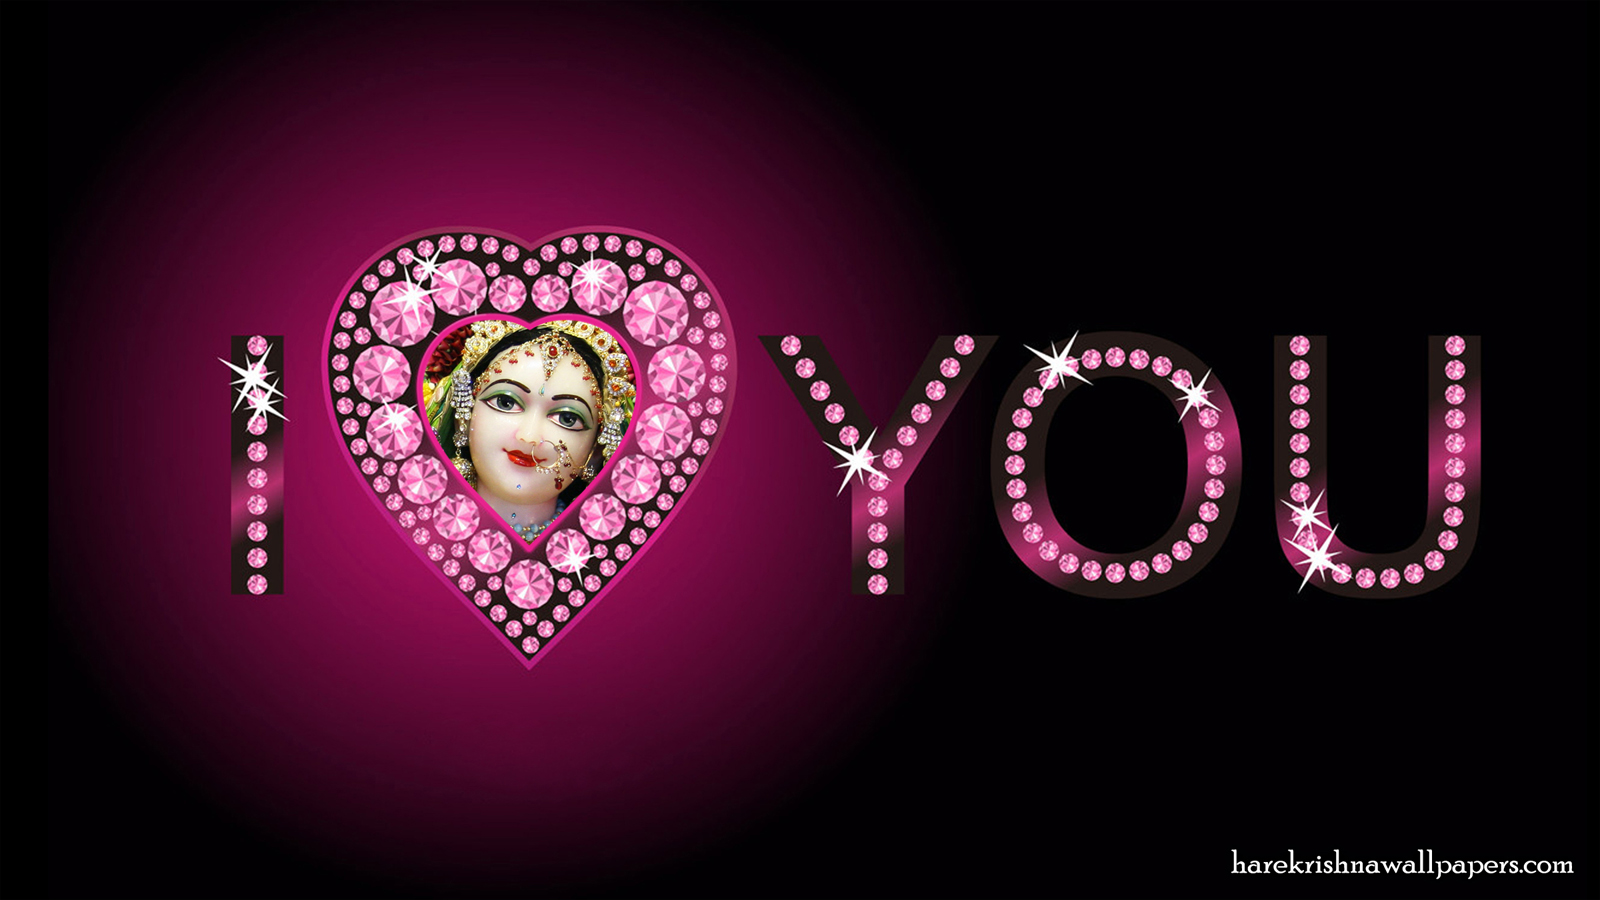 I Love You Radharani Wallpaper (015) Size 1600x900 Download